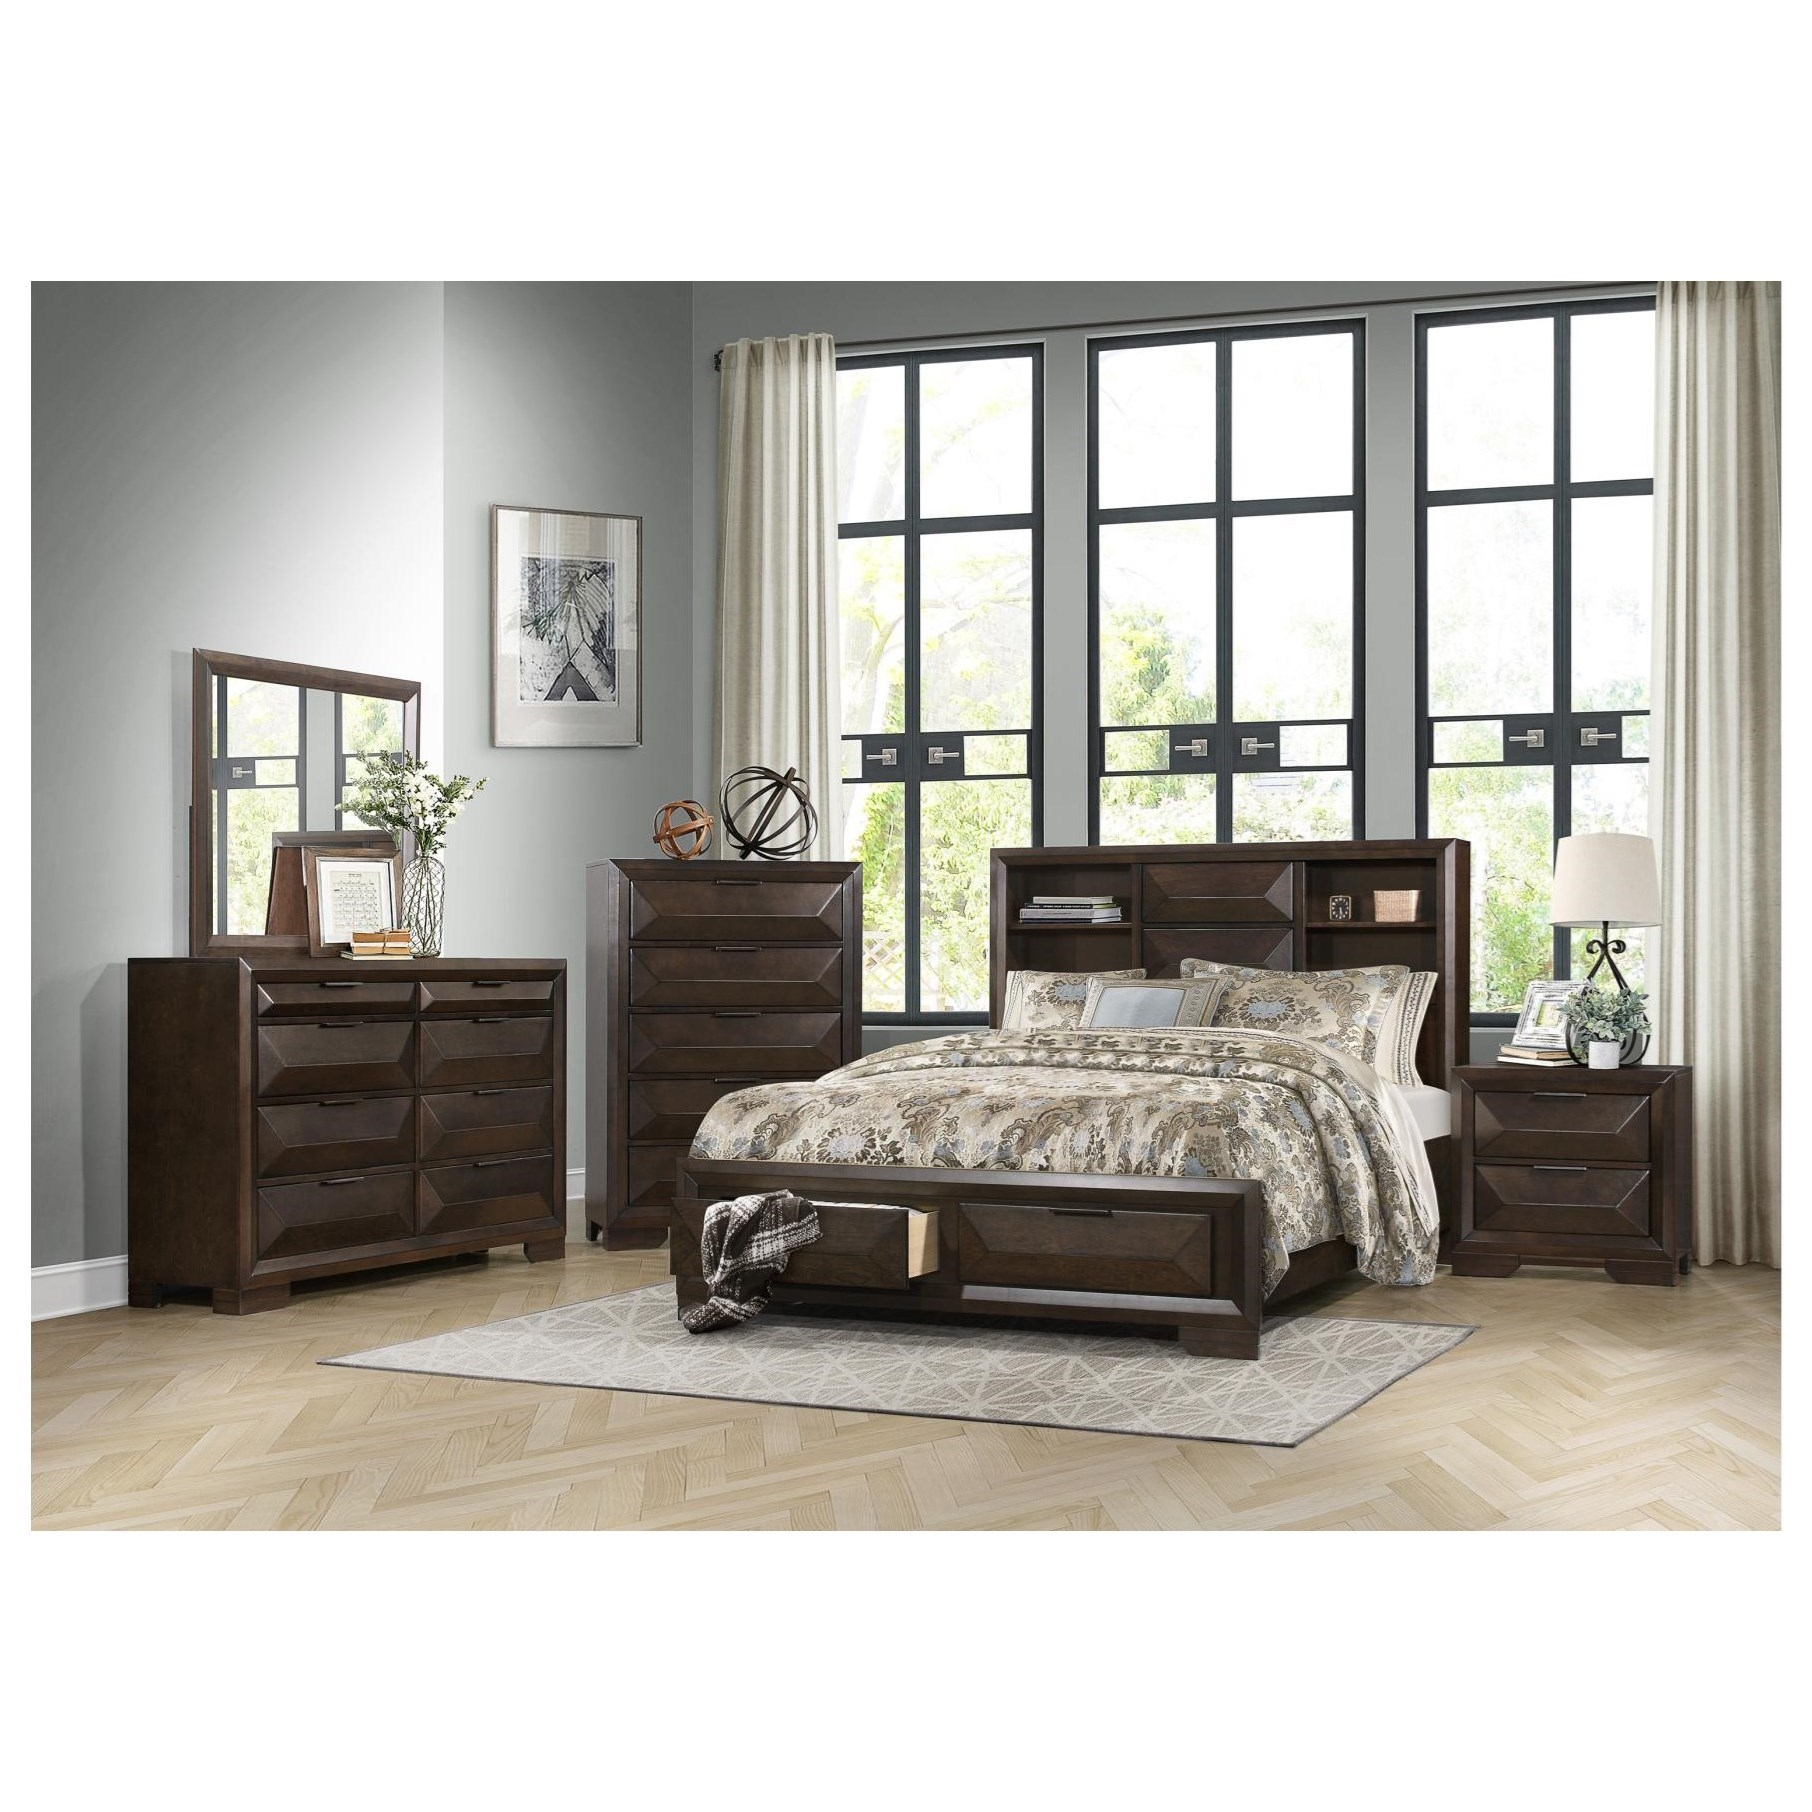 Chesky Queen Bedroom Group by Homelegance at Simply Home by Lindy's